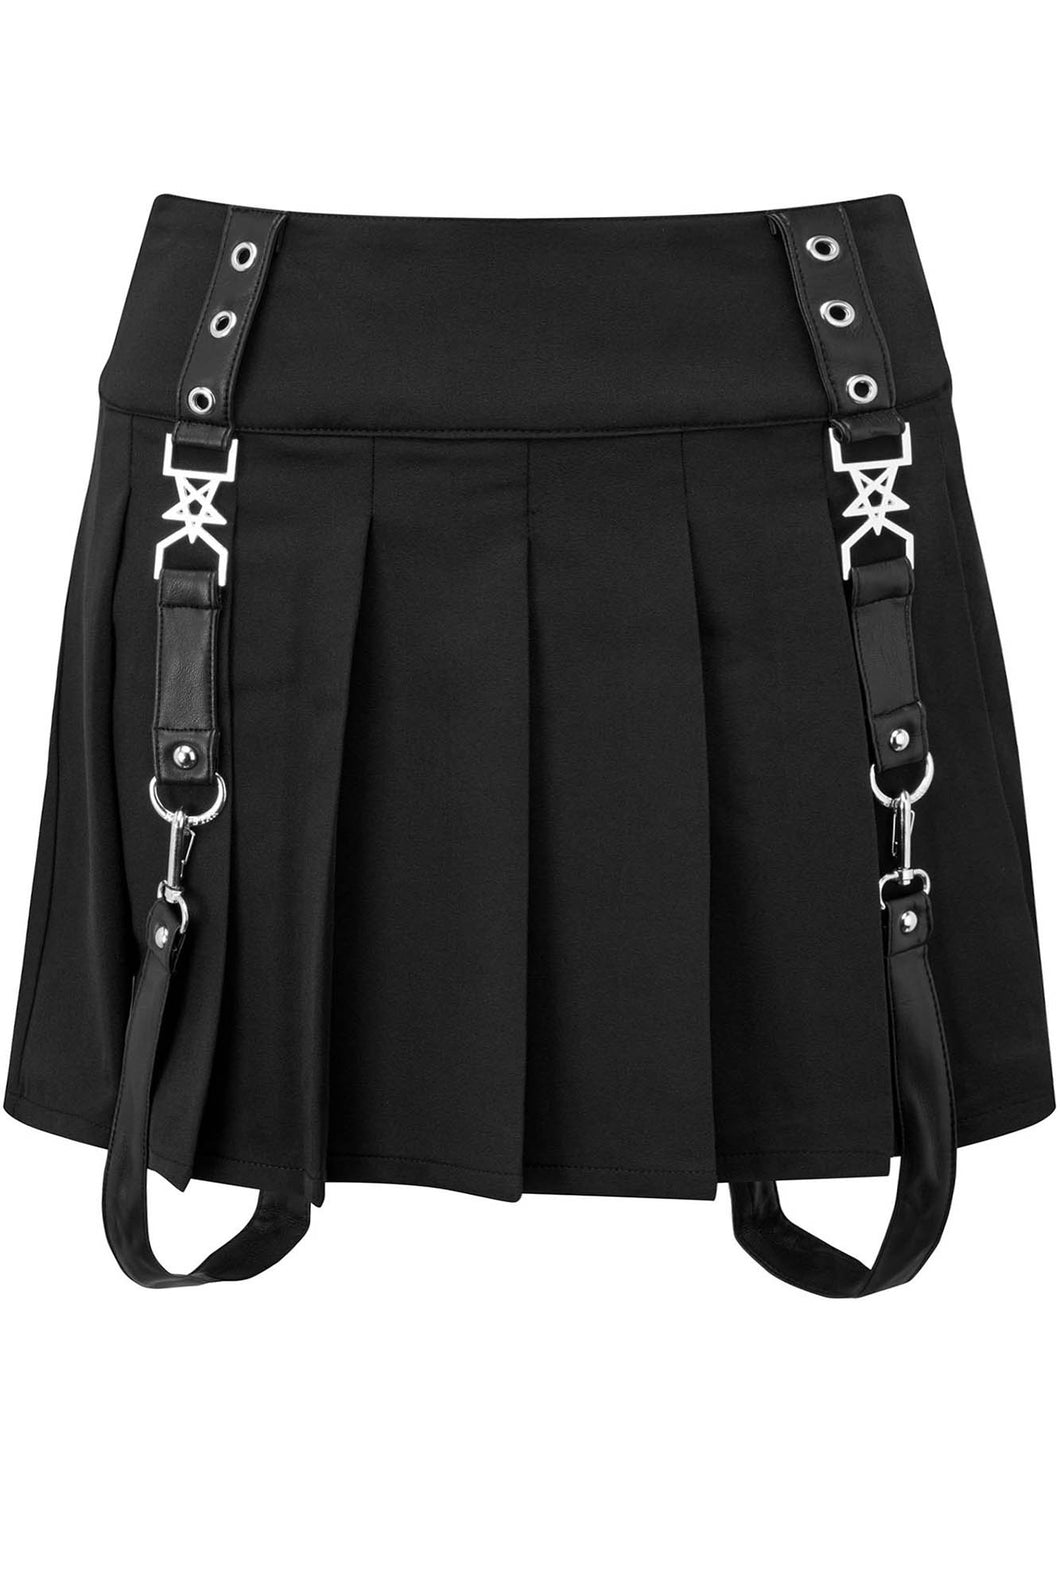 Killstar Grave Daze Mini Skirt Plus Size - Kate's Clothing